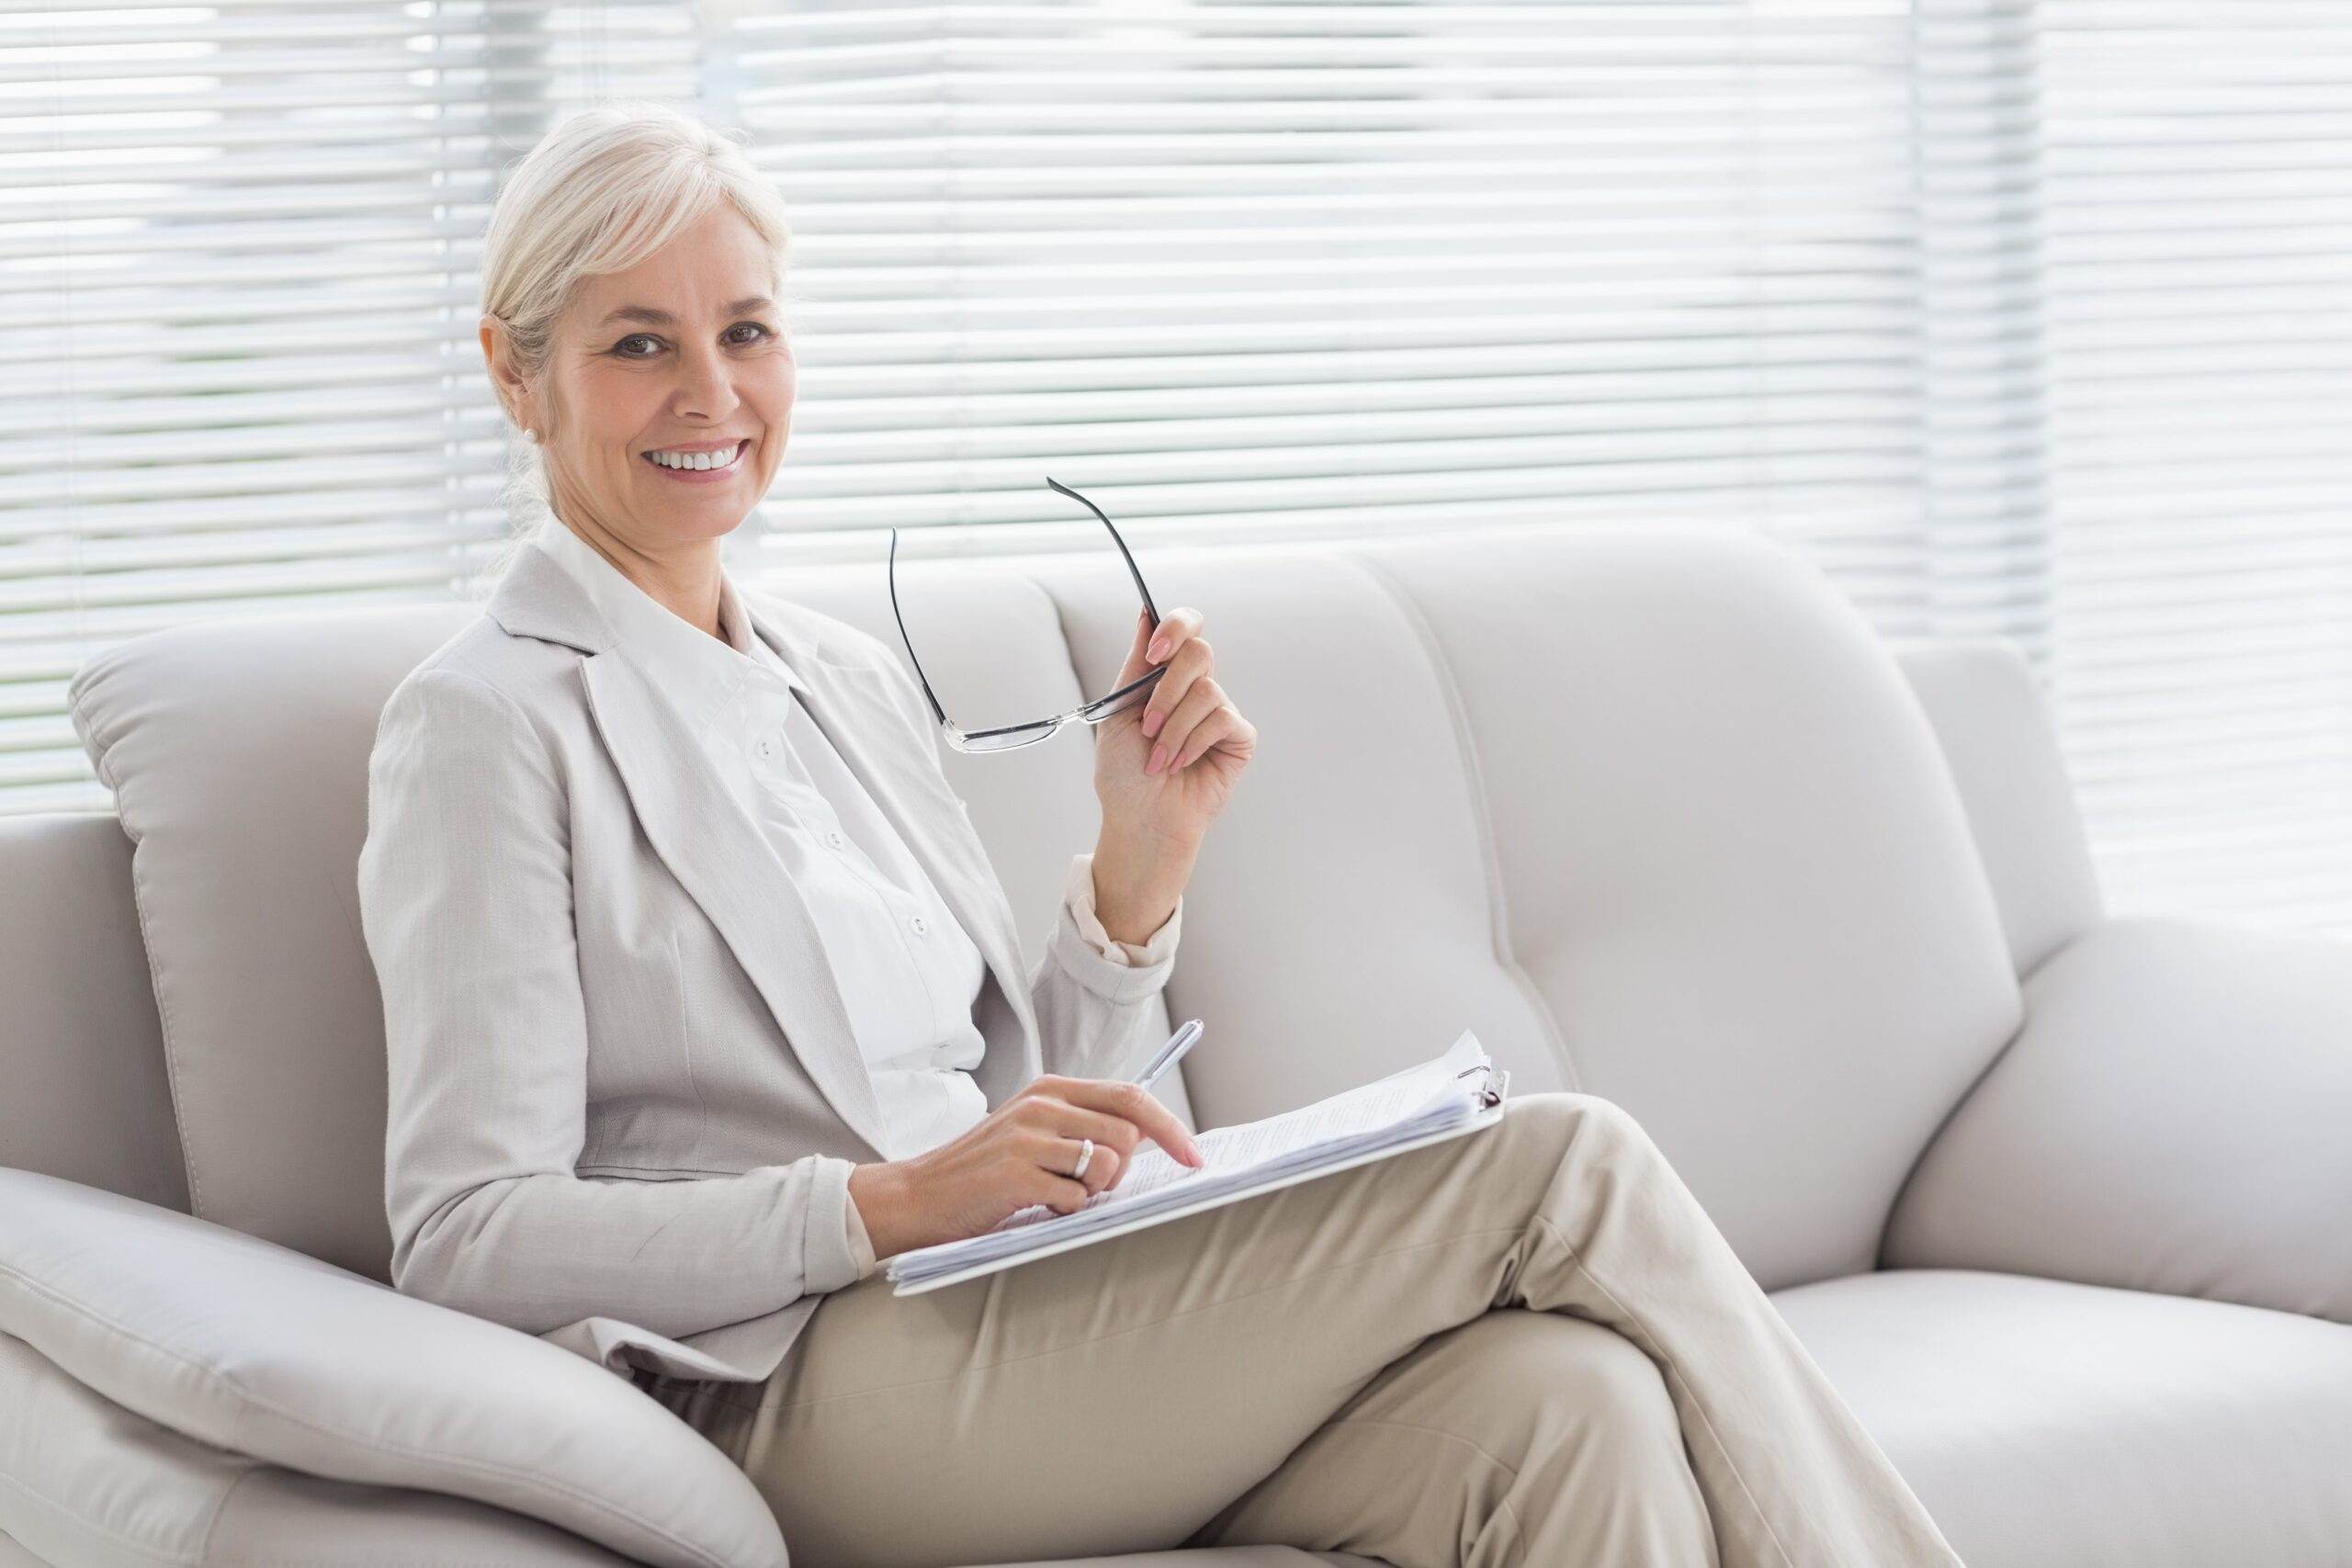 Woman with glasses in hand smiling